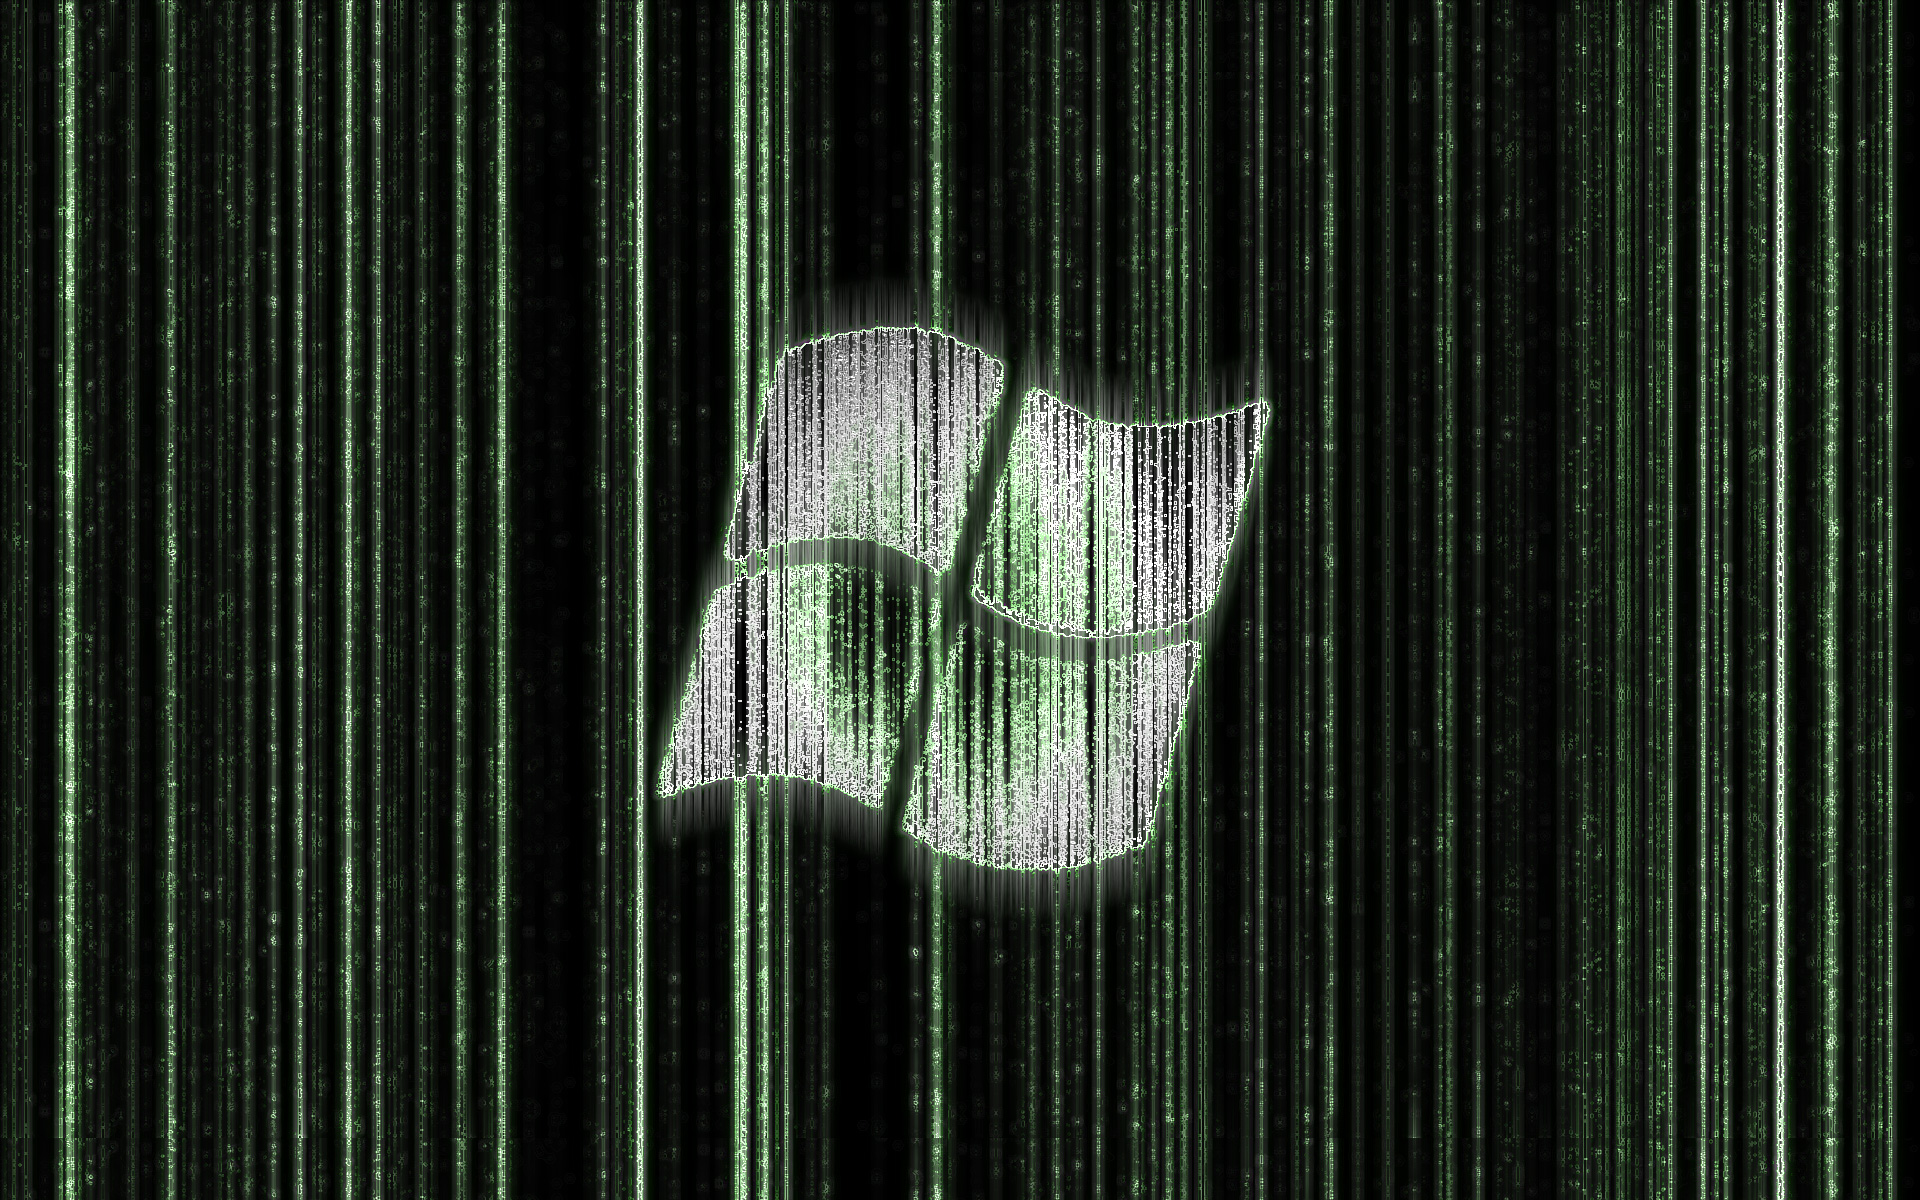 matrix-wallpaper-hd